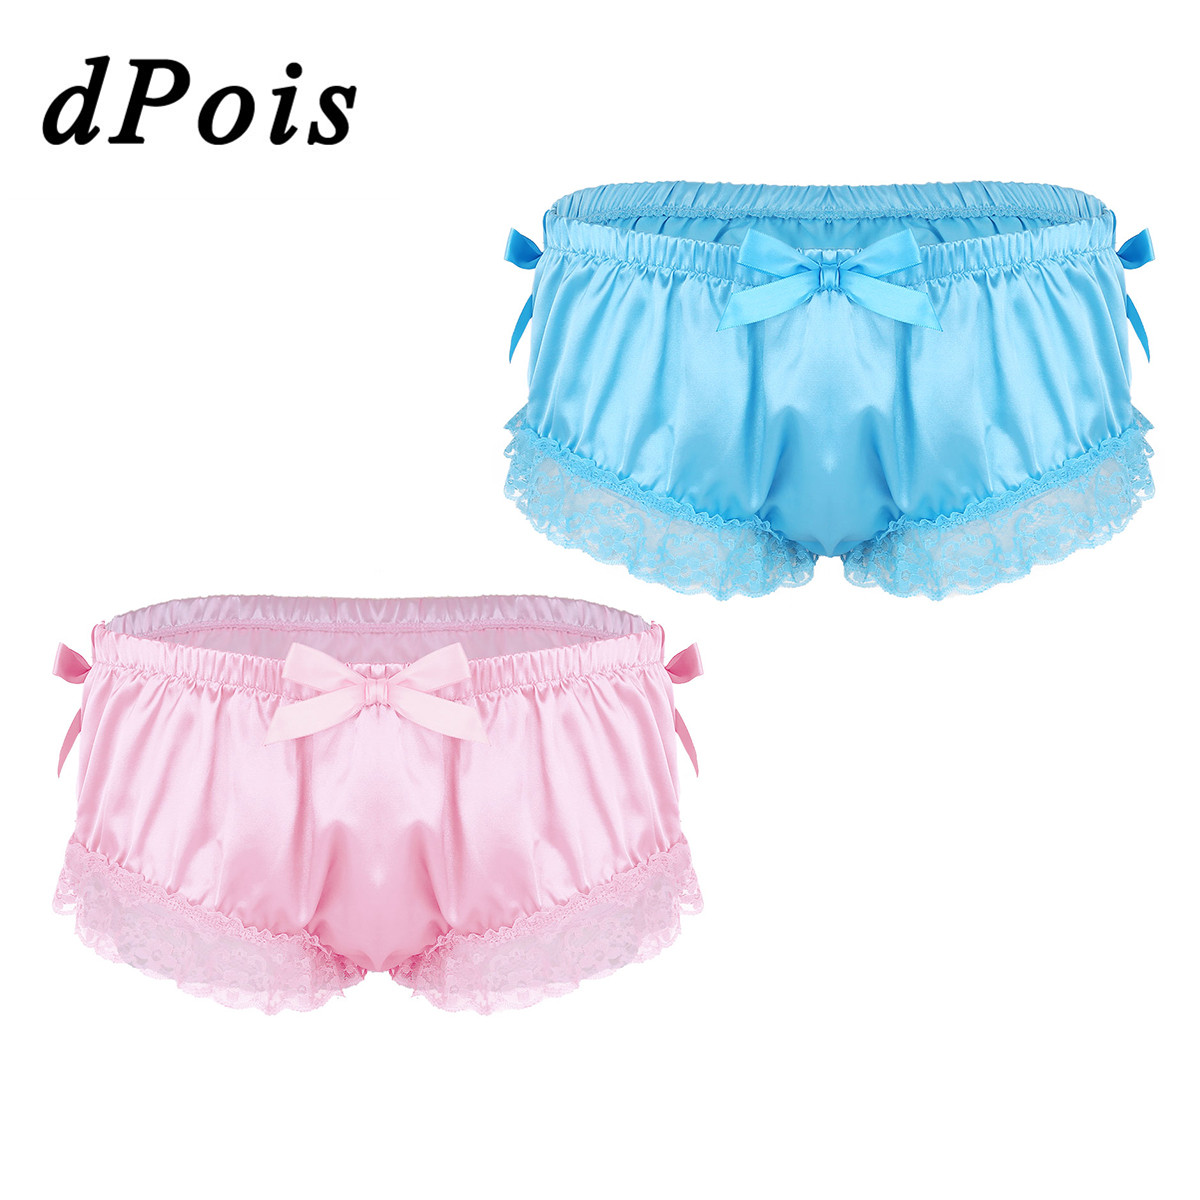 dPois Mens Shiny Satin Frilly Ruffled Lace Sissy French Maid 2 Piece Lingerie Set Bra Top Skirted Panties